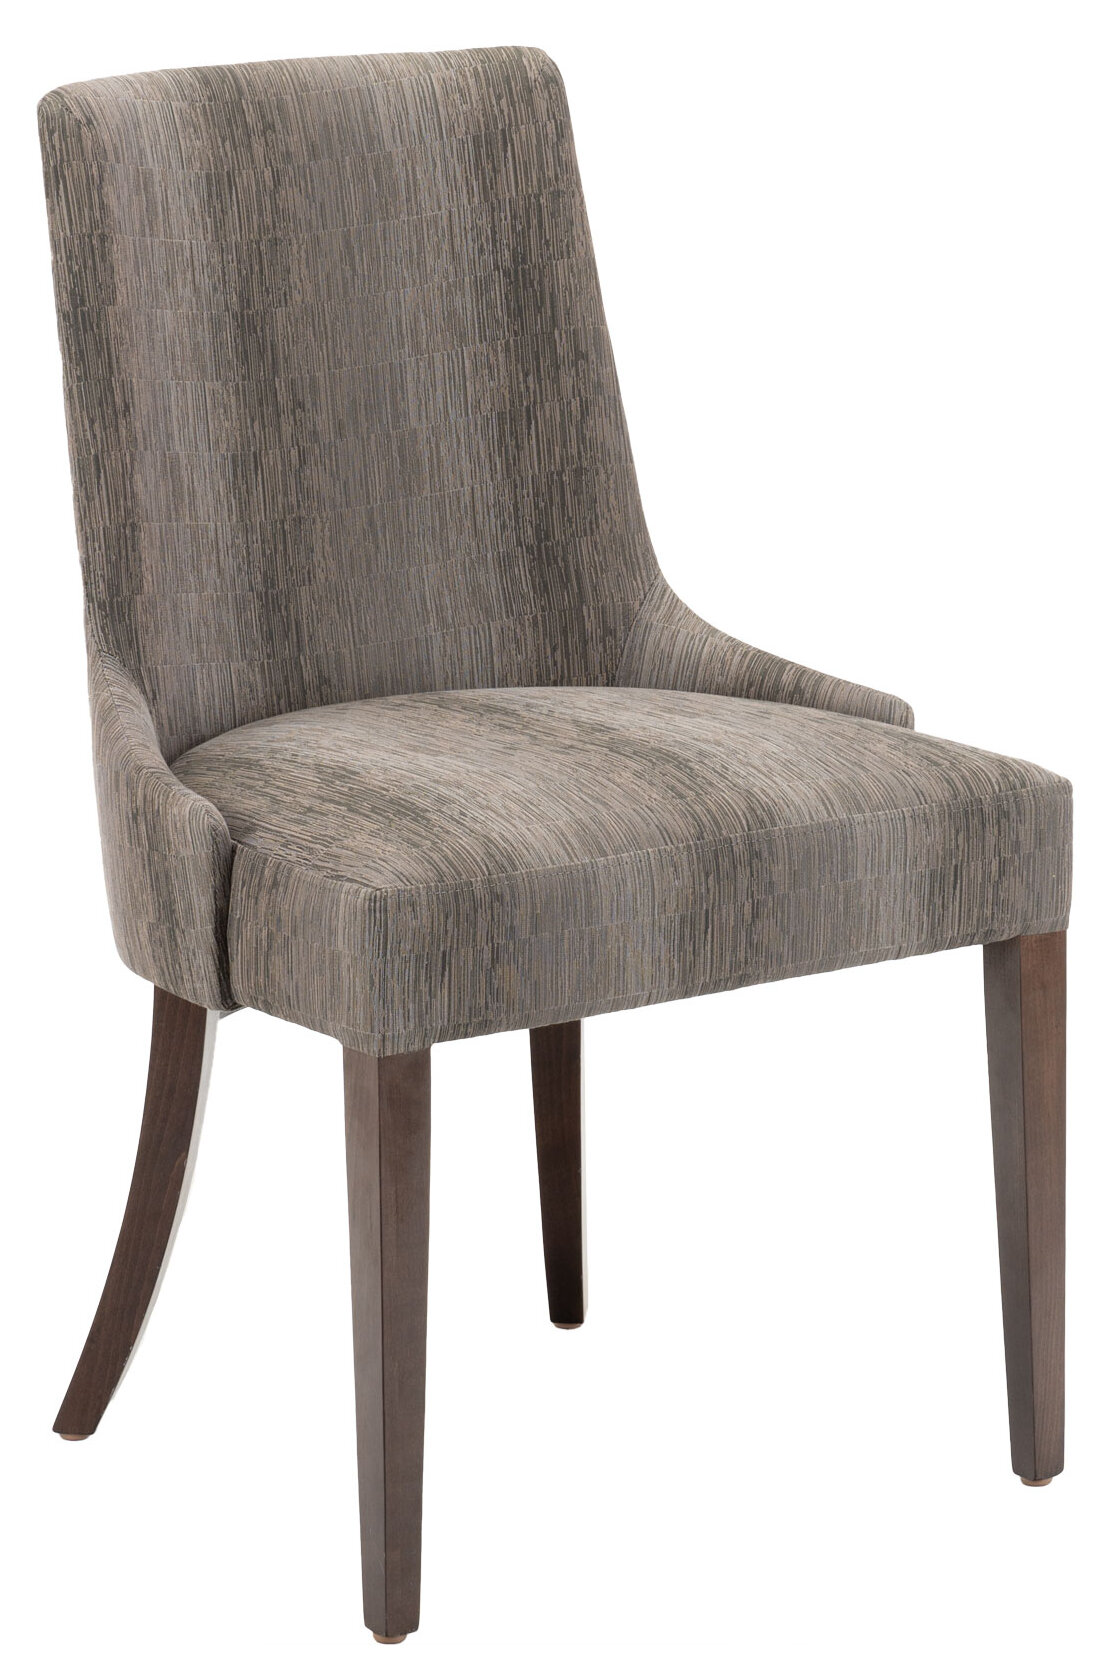 Florida Seating Upholstered Side Chair In Nonstop Concrete Wayfair